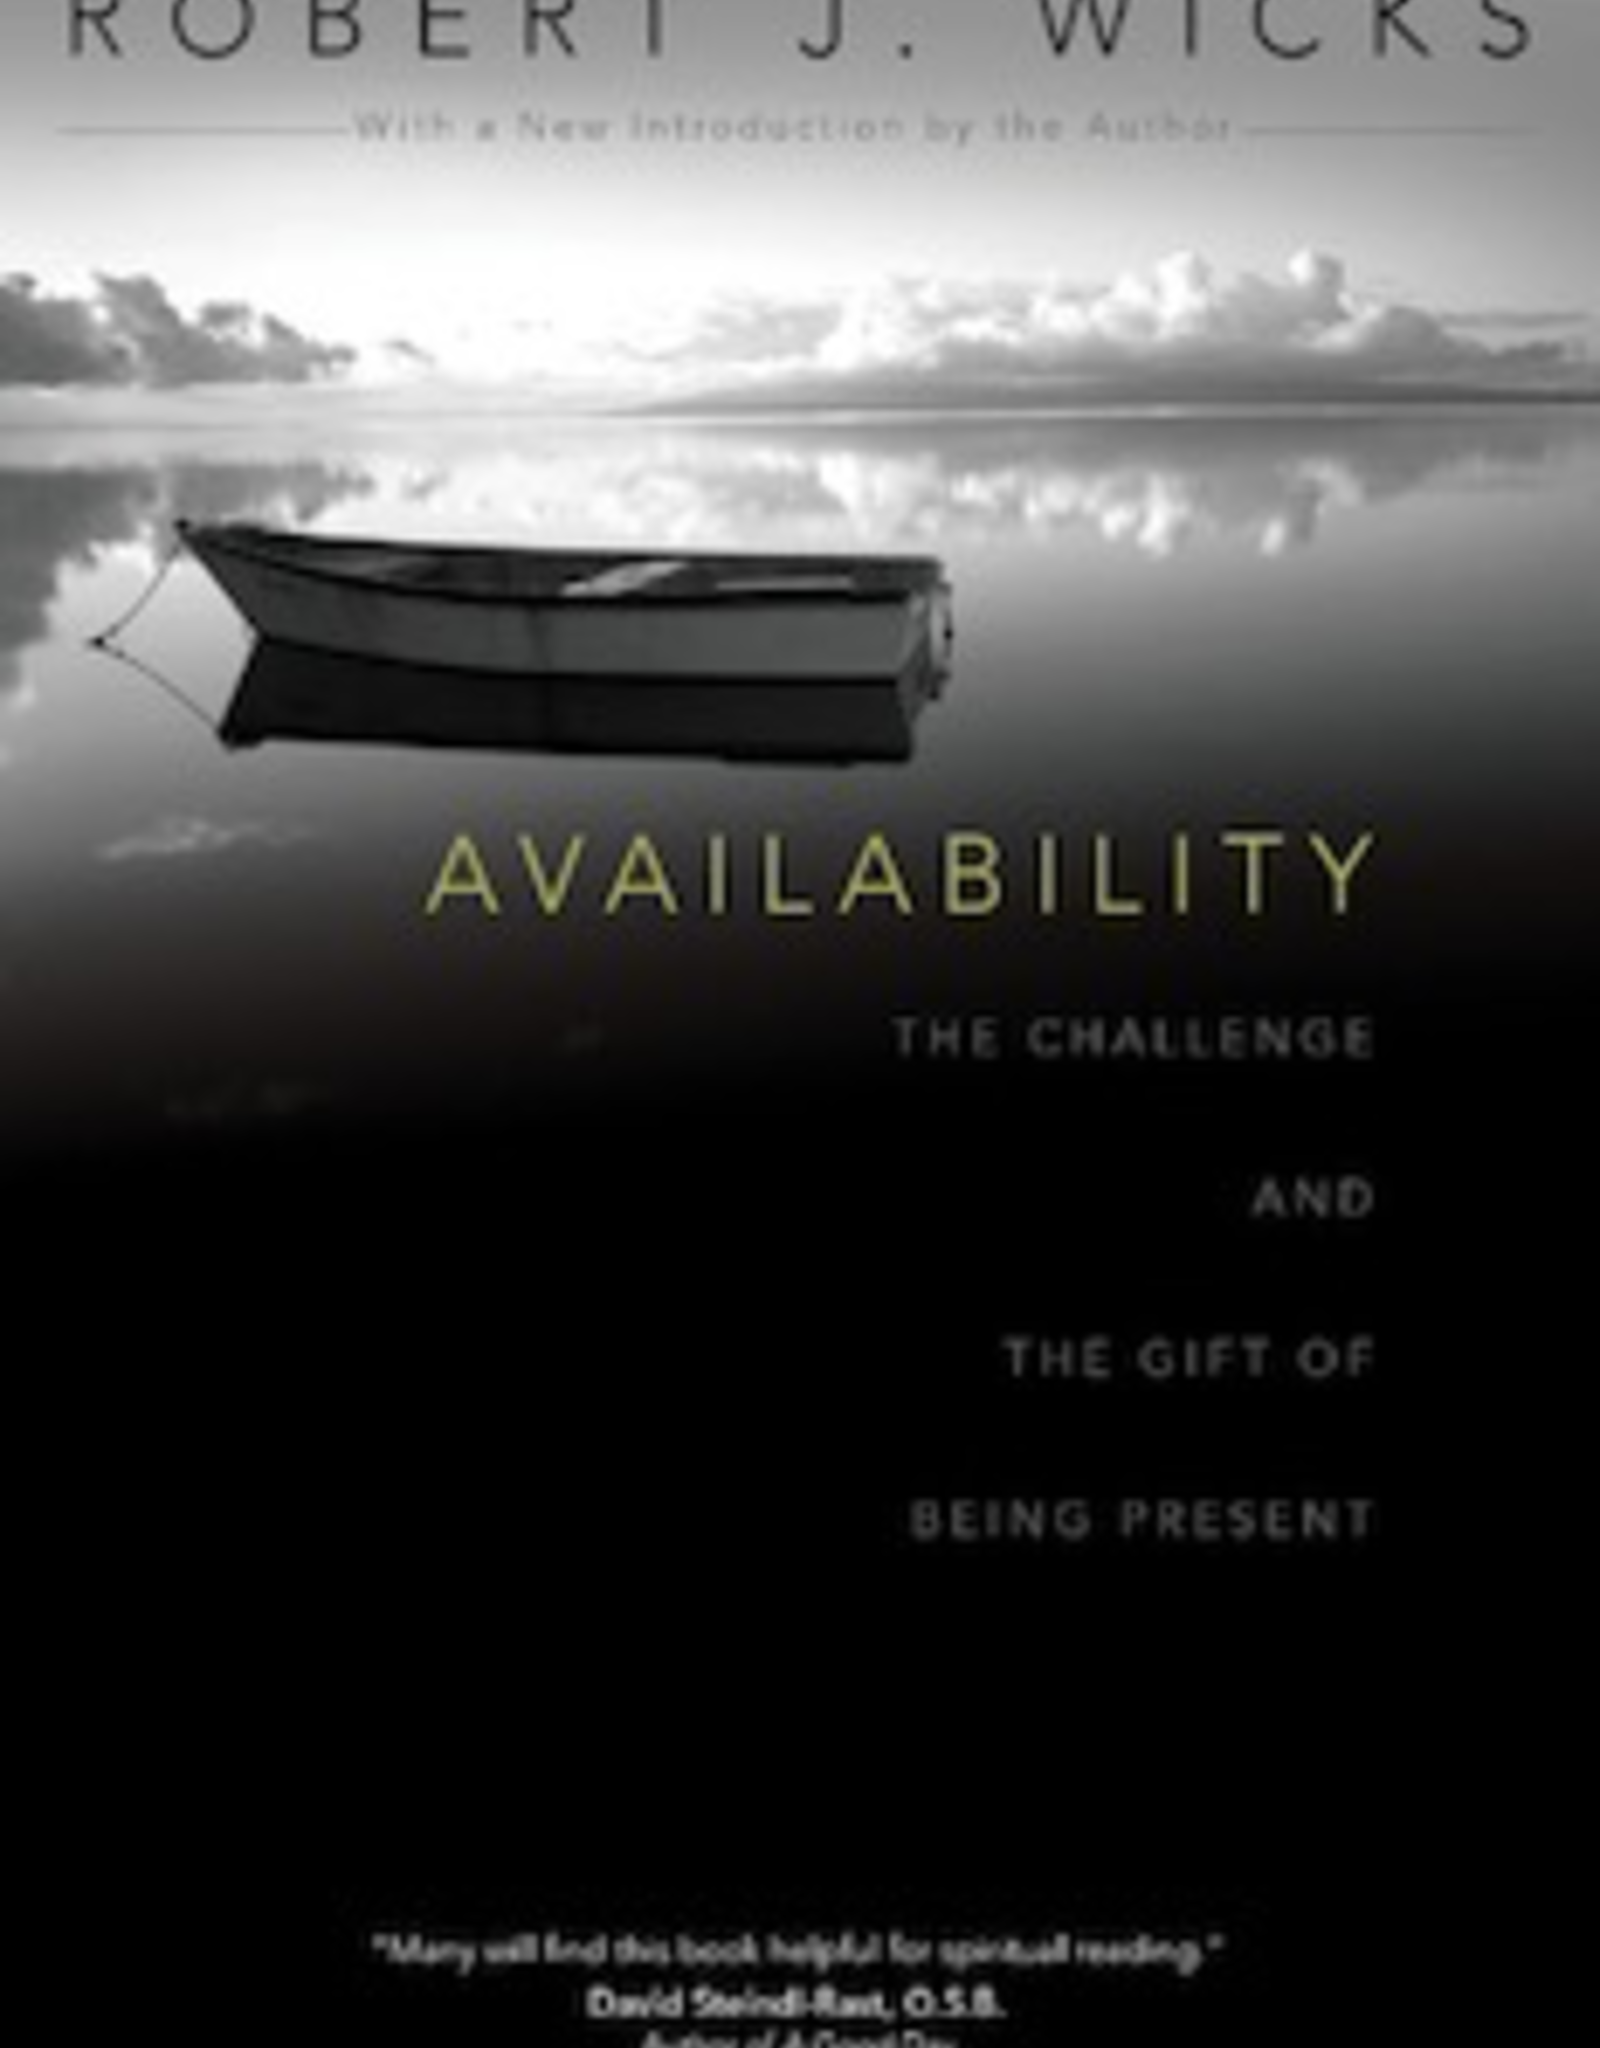 Ave Maria Press Availability:  The Challenge and the Gift of Being Present, by Robert J. Wicks (paperback)